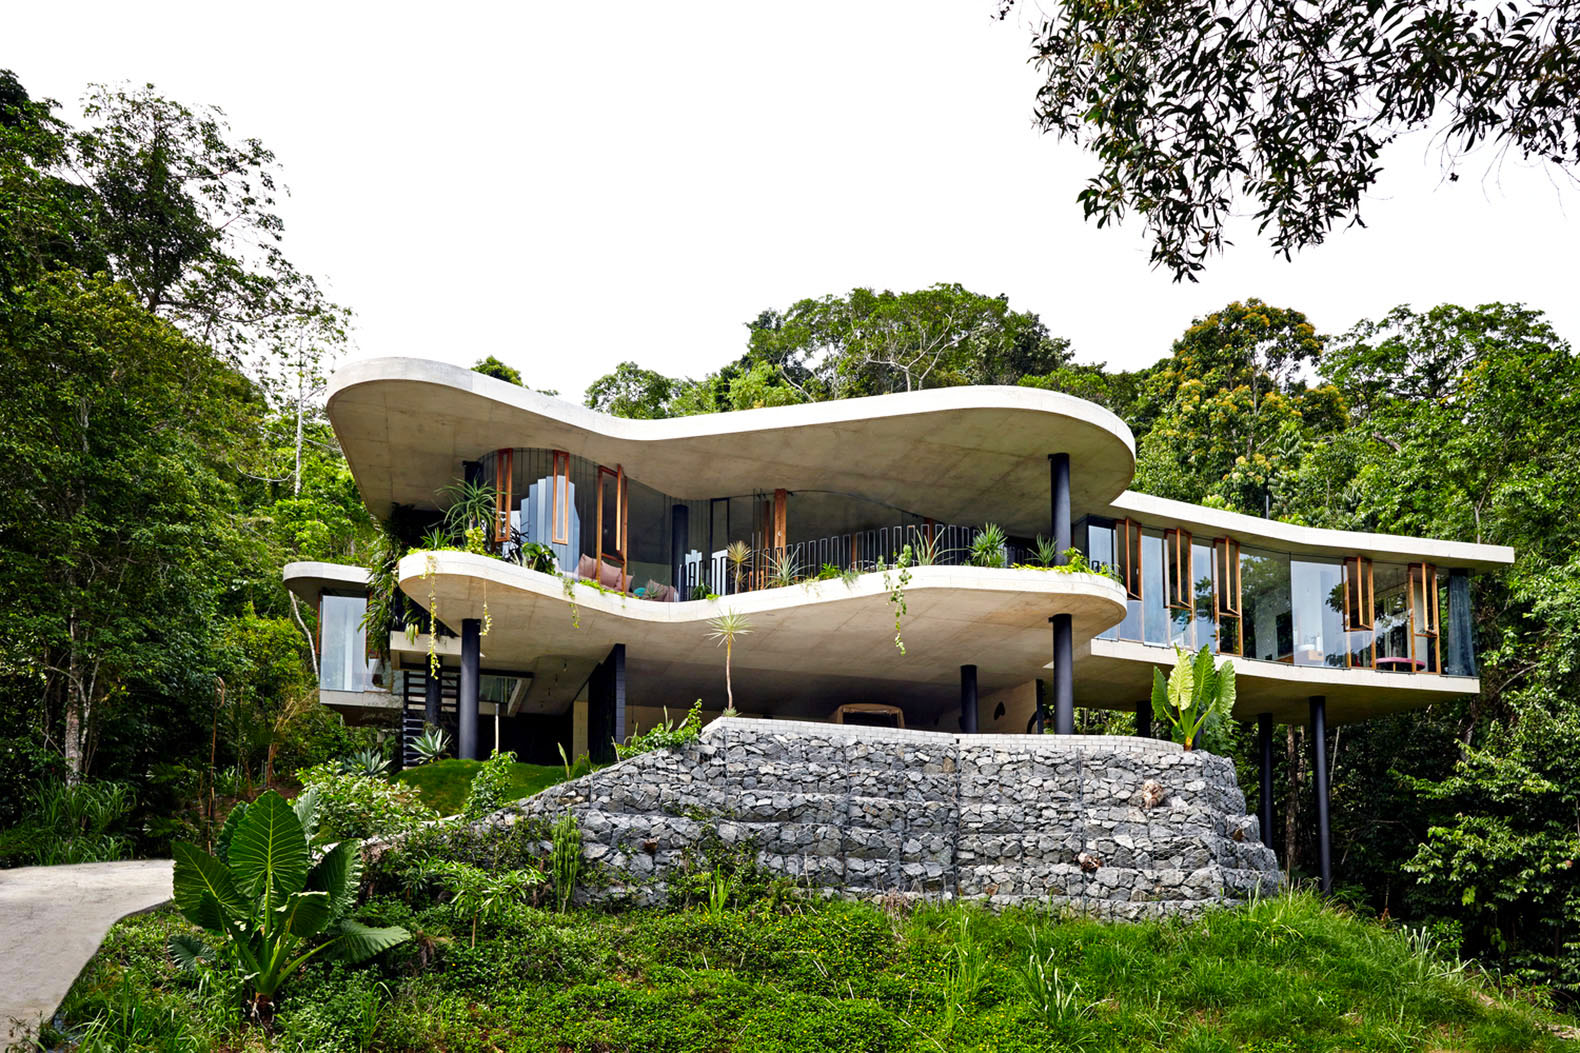 Charming Low Impact Planchonella House Meanders Through Queenslandu0027s Lush Tropical  Forest